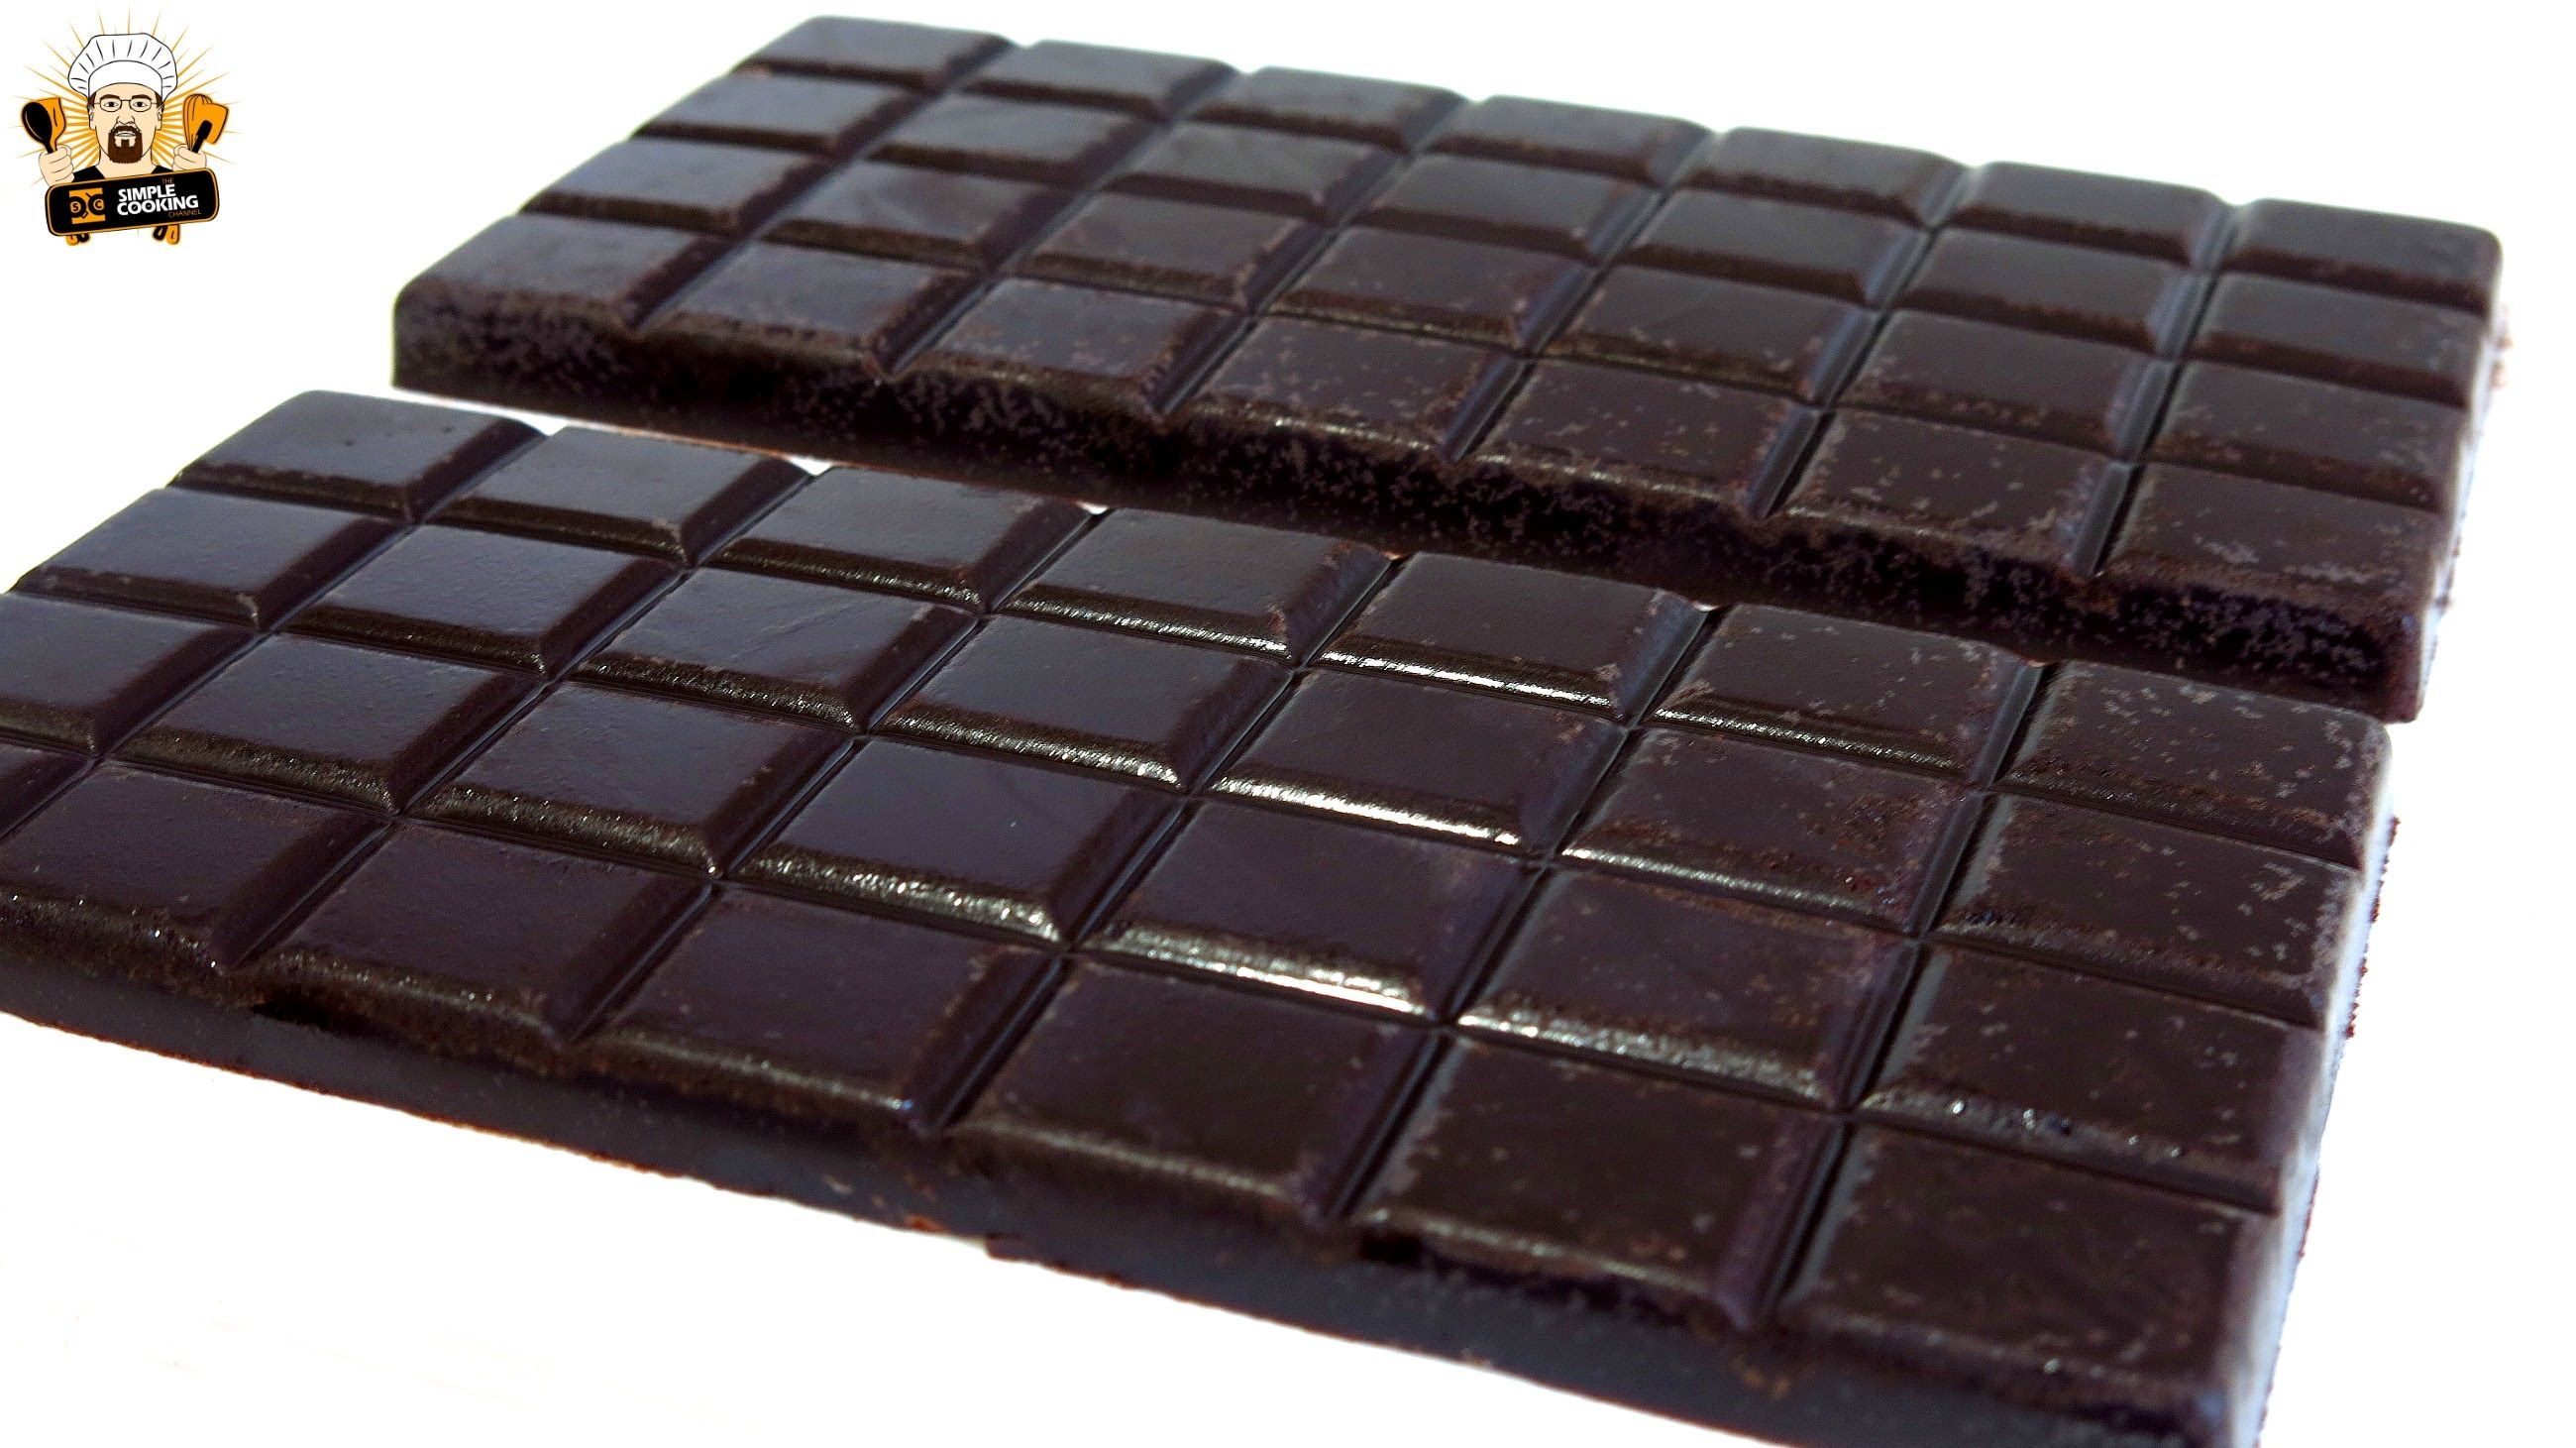 HOW TO MAKE DARK CHOCOLATE Ingredients 100 Grams of cocoa butter 2  Teaspoons of vanilla extract 1/4 Cup of honey 6 Tablespoons of dark dutch  cocoa